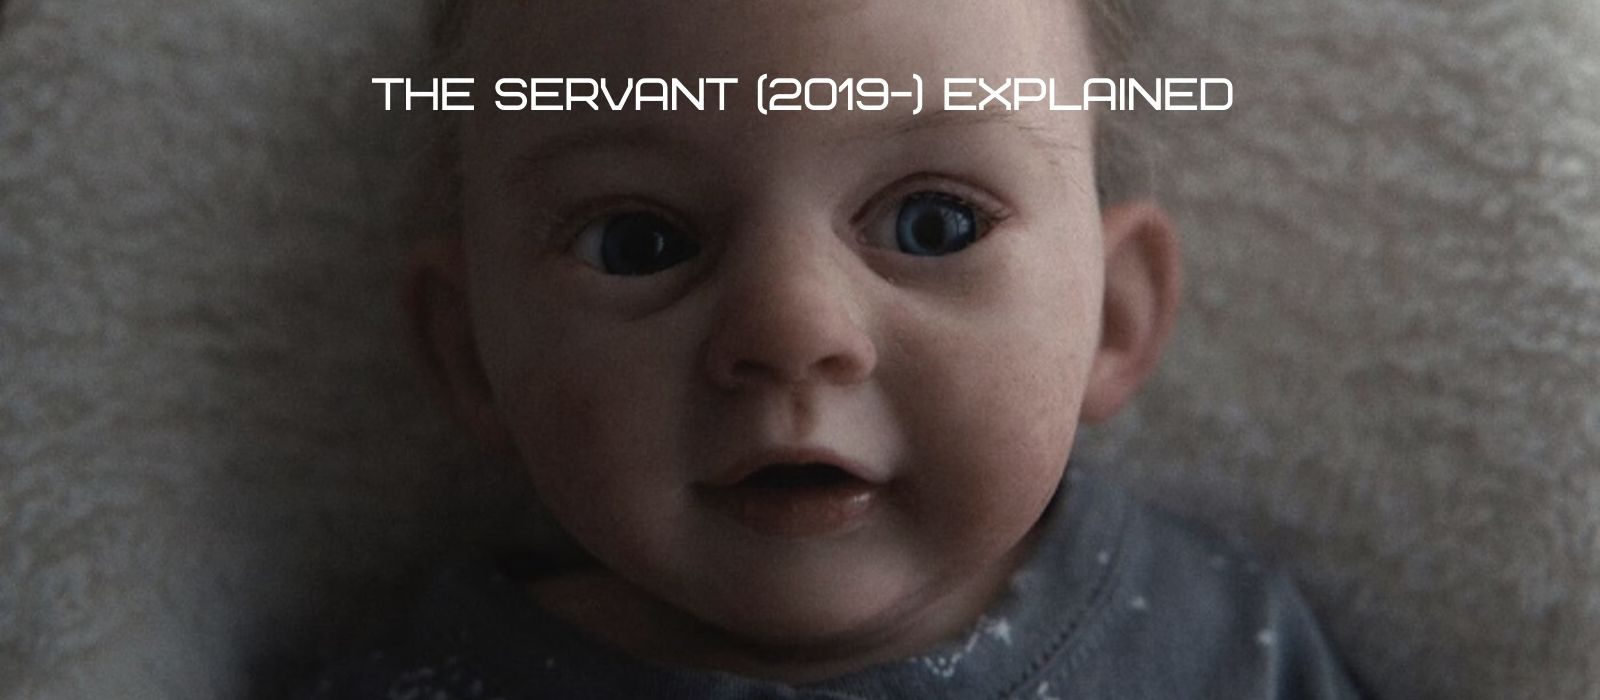 the servant series explained